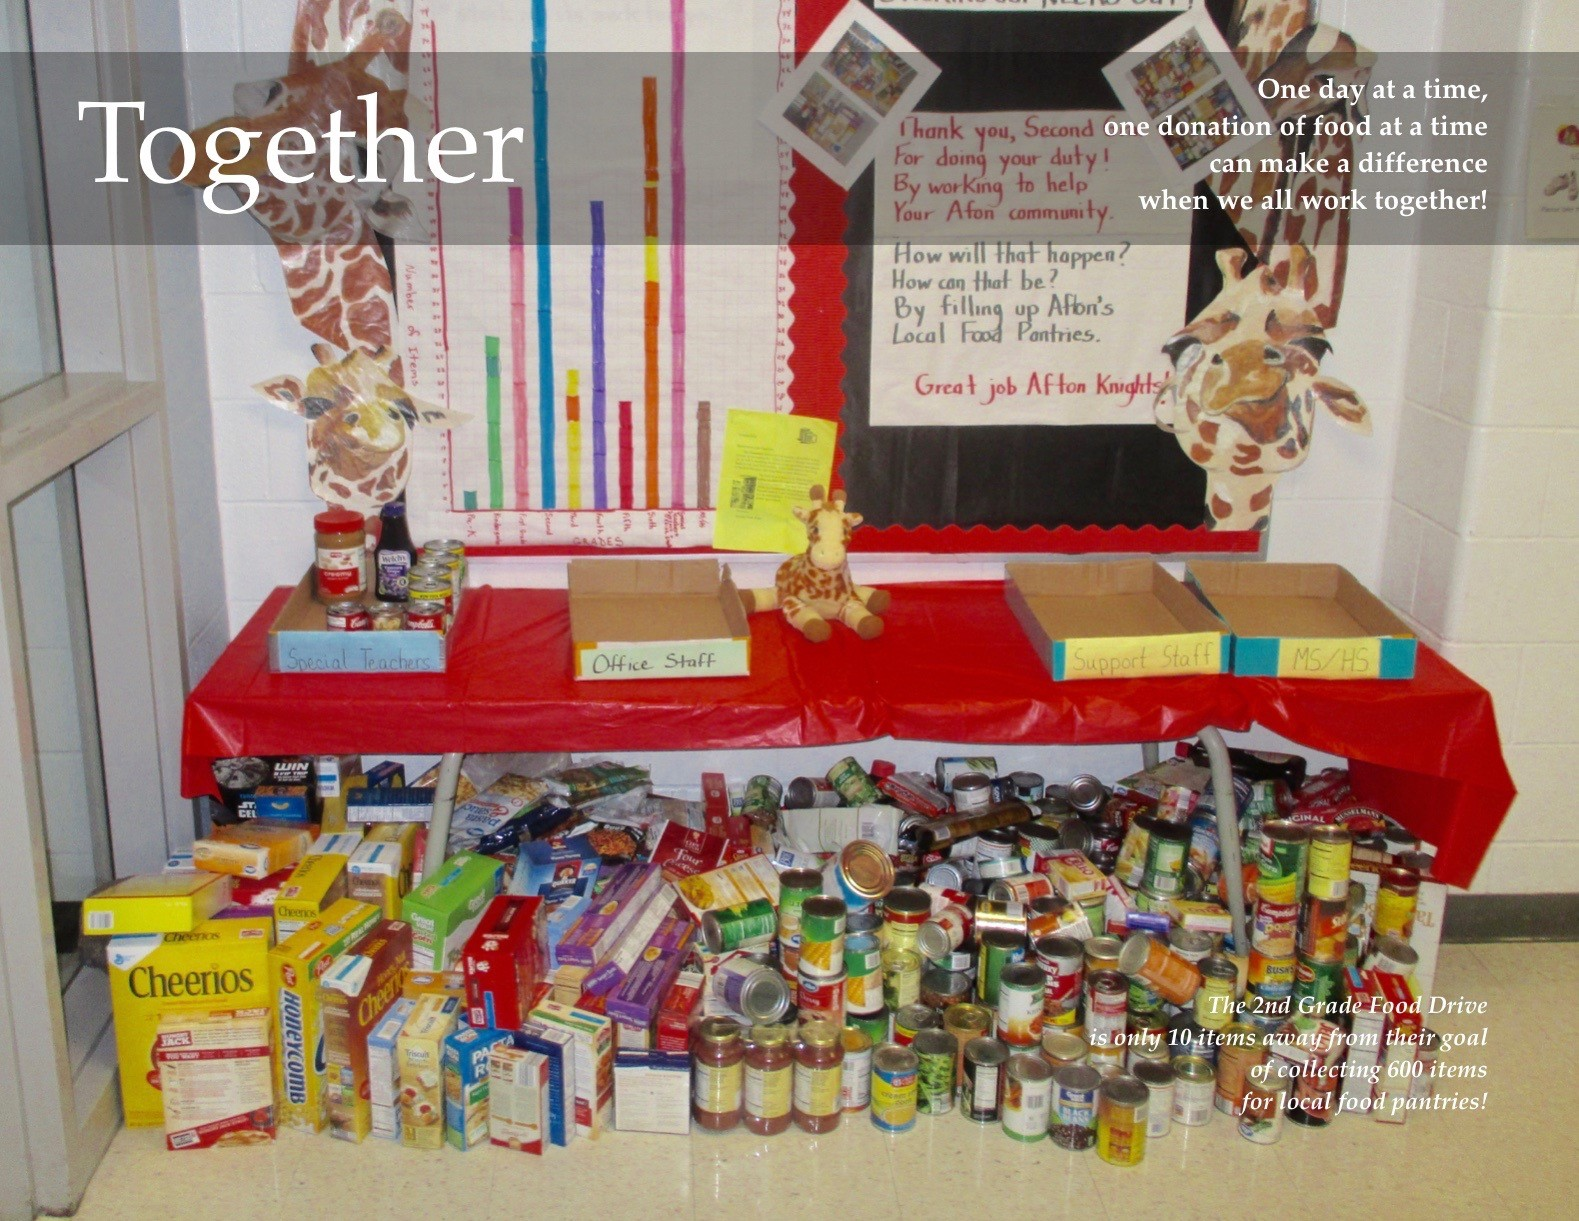 ACSLIB Poster: Table of collected food for elementary food drive.